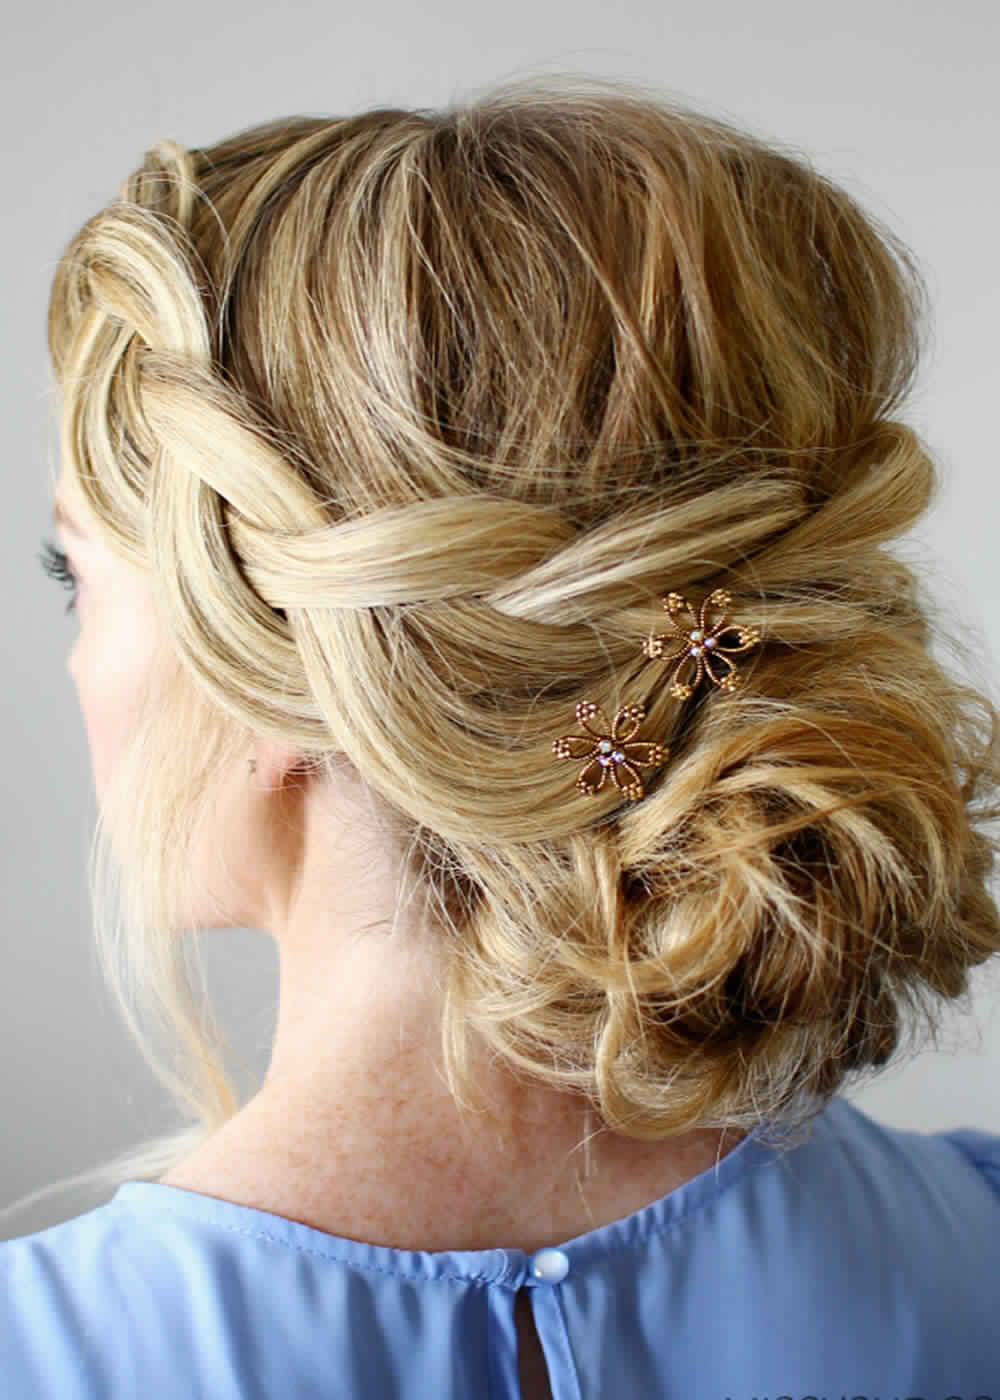 Special-soft braided hairstyles 2018-2019-Amaze your friends! 1